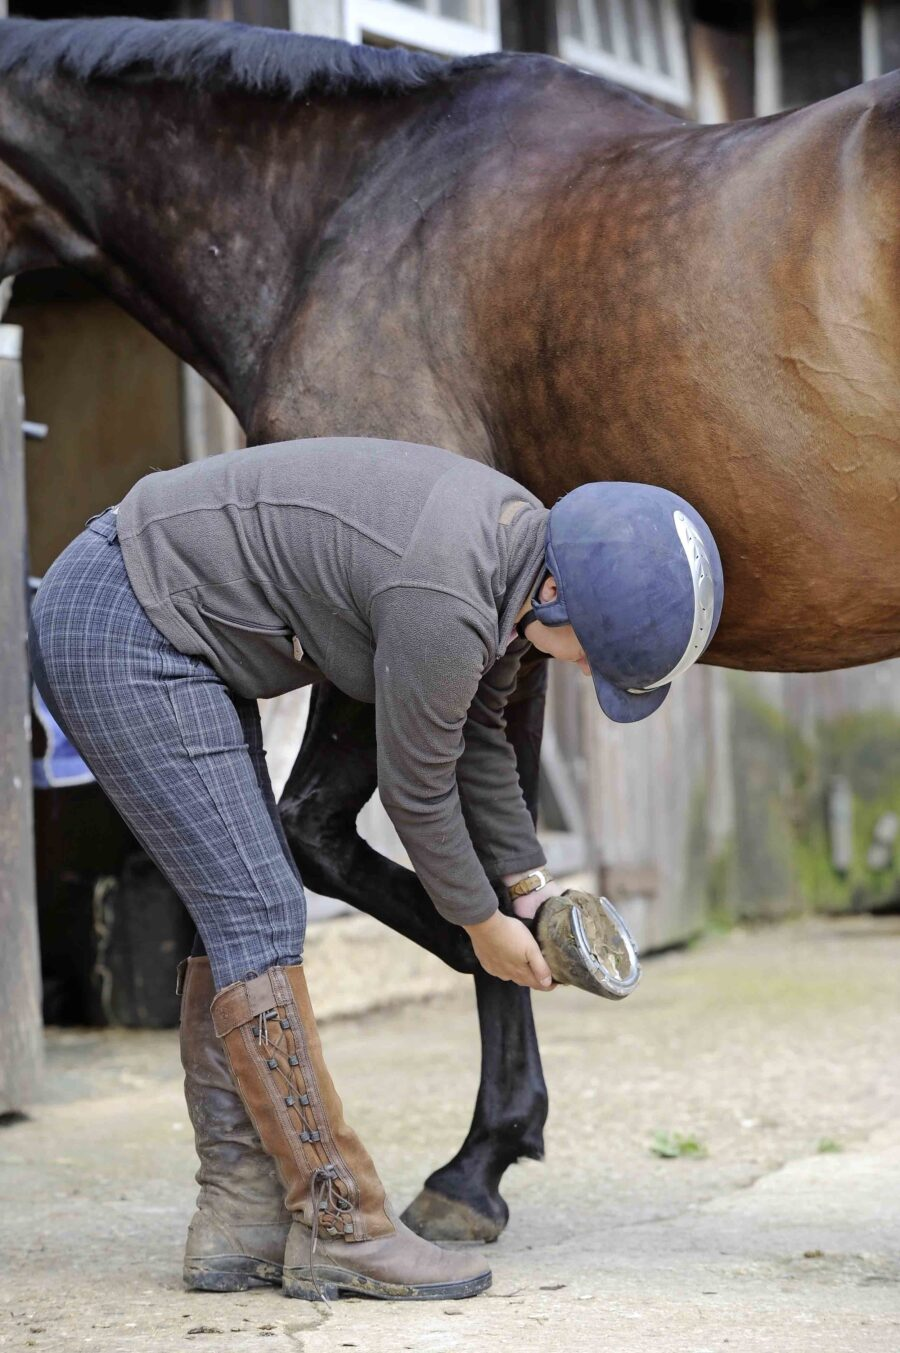 Care for His Hooves